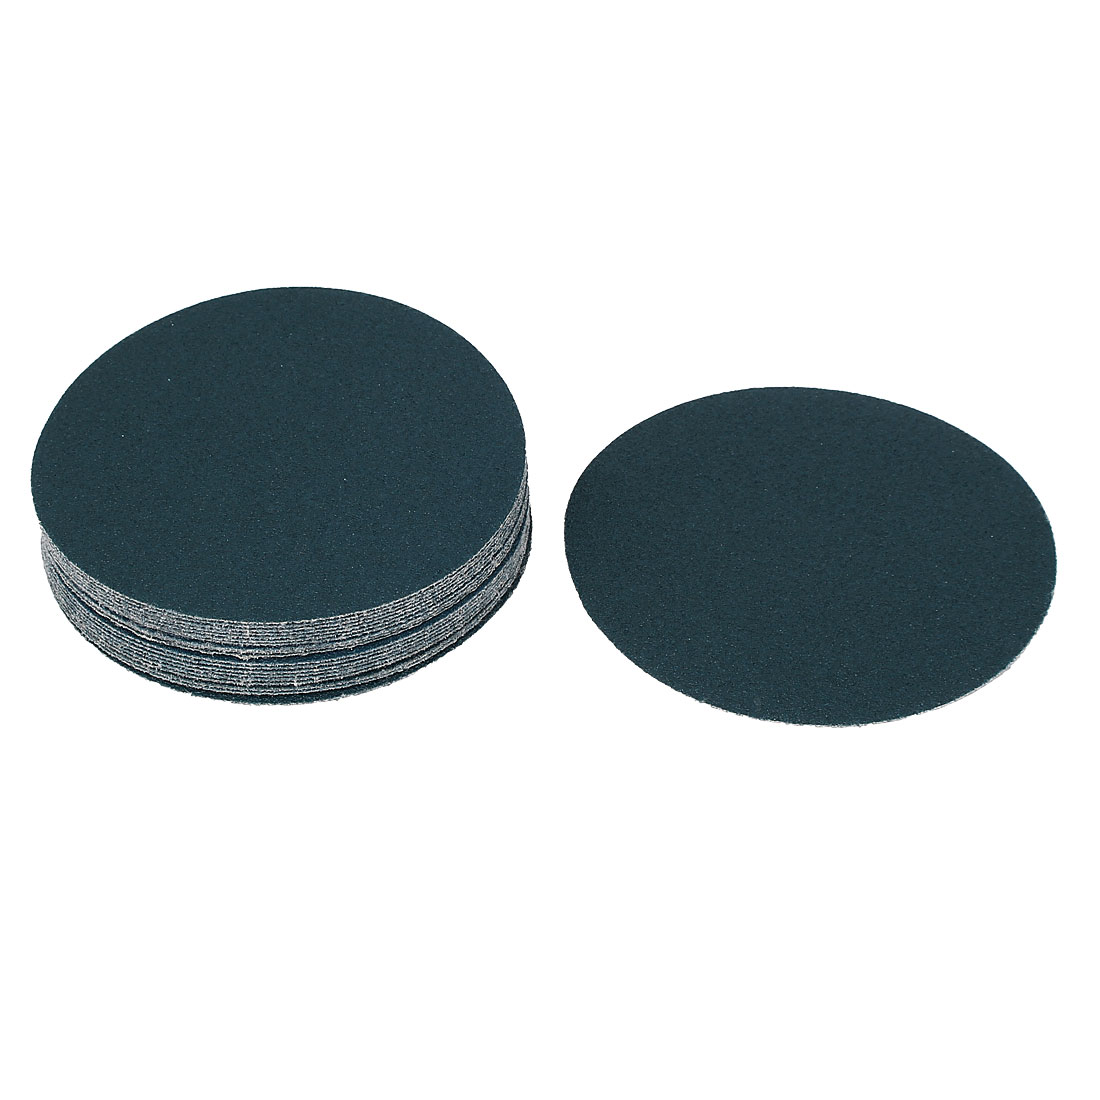 "5"" Sandpaper Auto Car Paint Polishing Sanding Disc Hook and Loop Fastener 80 Grit 20pcs"